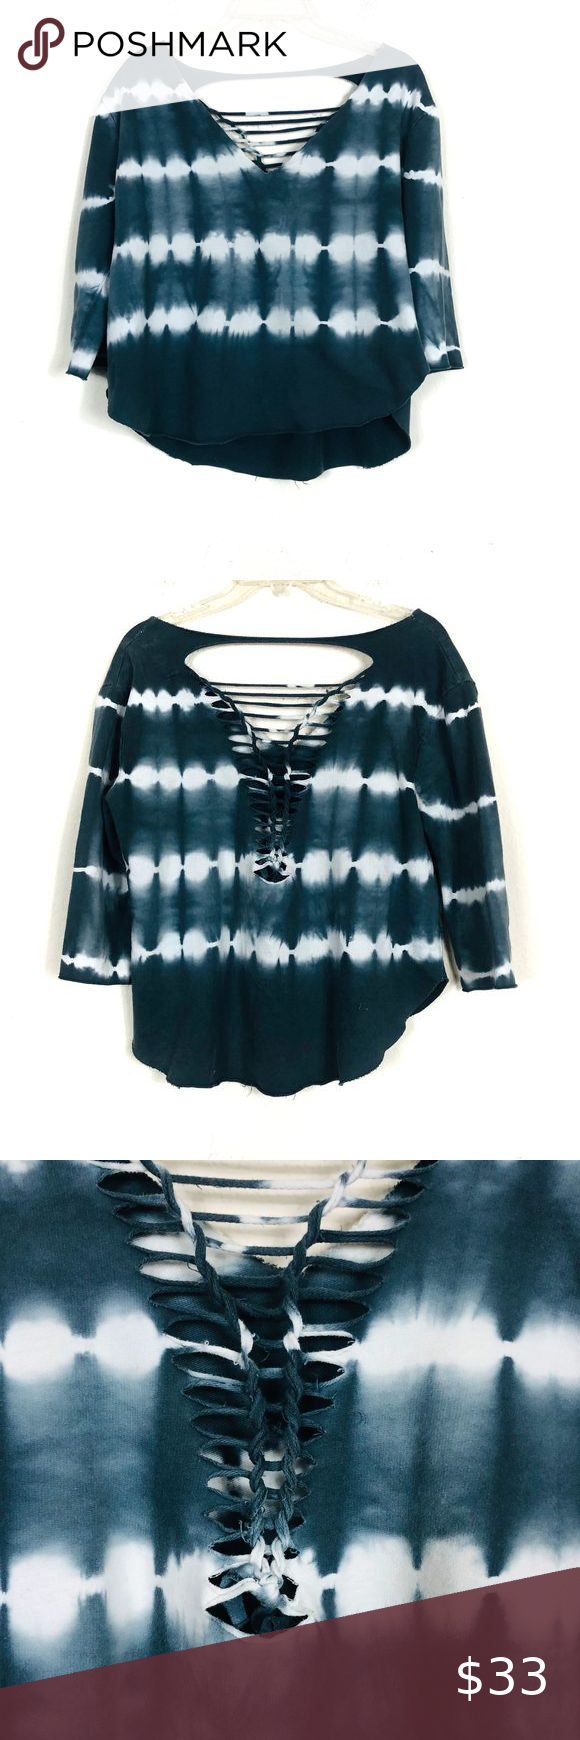 Urban Outfitters Tie Dye Lace Up Sweatshirt Urban Outfitters Staring At Stars Tie Dye Lace Up Raw H Sweaters For Women Clothes Design Urban Outfitters Sweaters [ 1740 x 580 Pixel ]